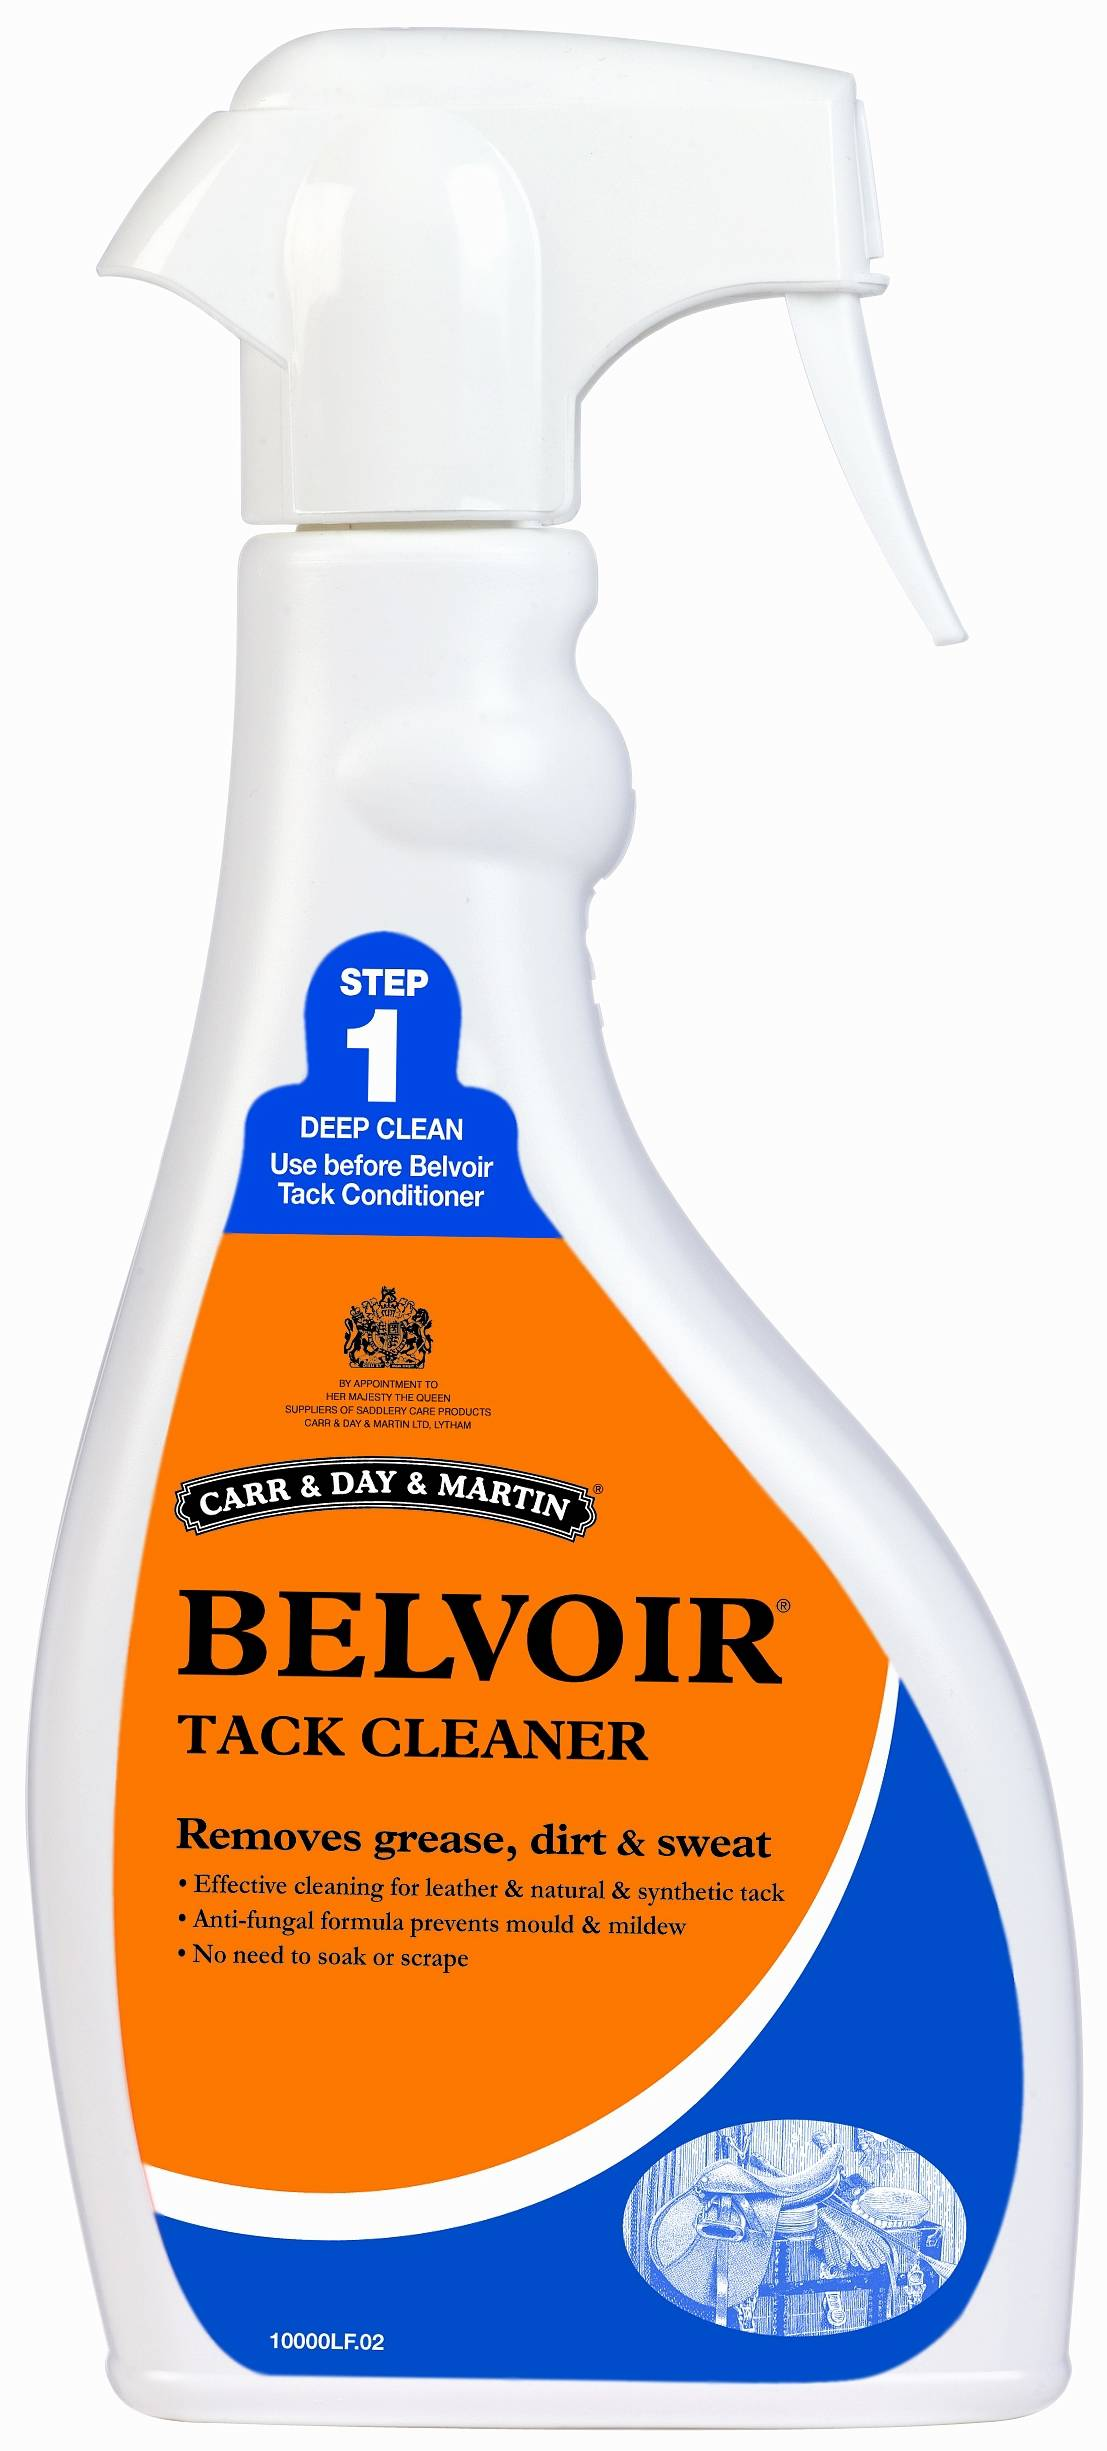 Carr & Day & Martin Horse Belvoir Tack Cleaner Spray